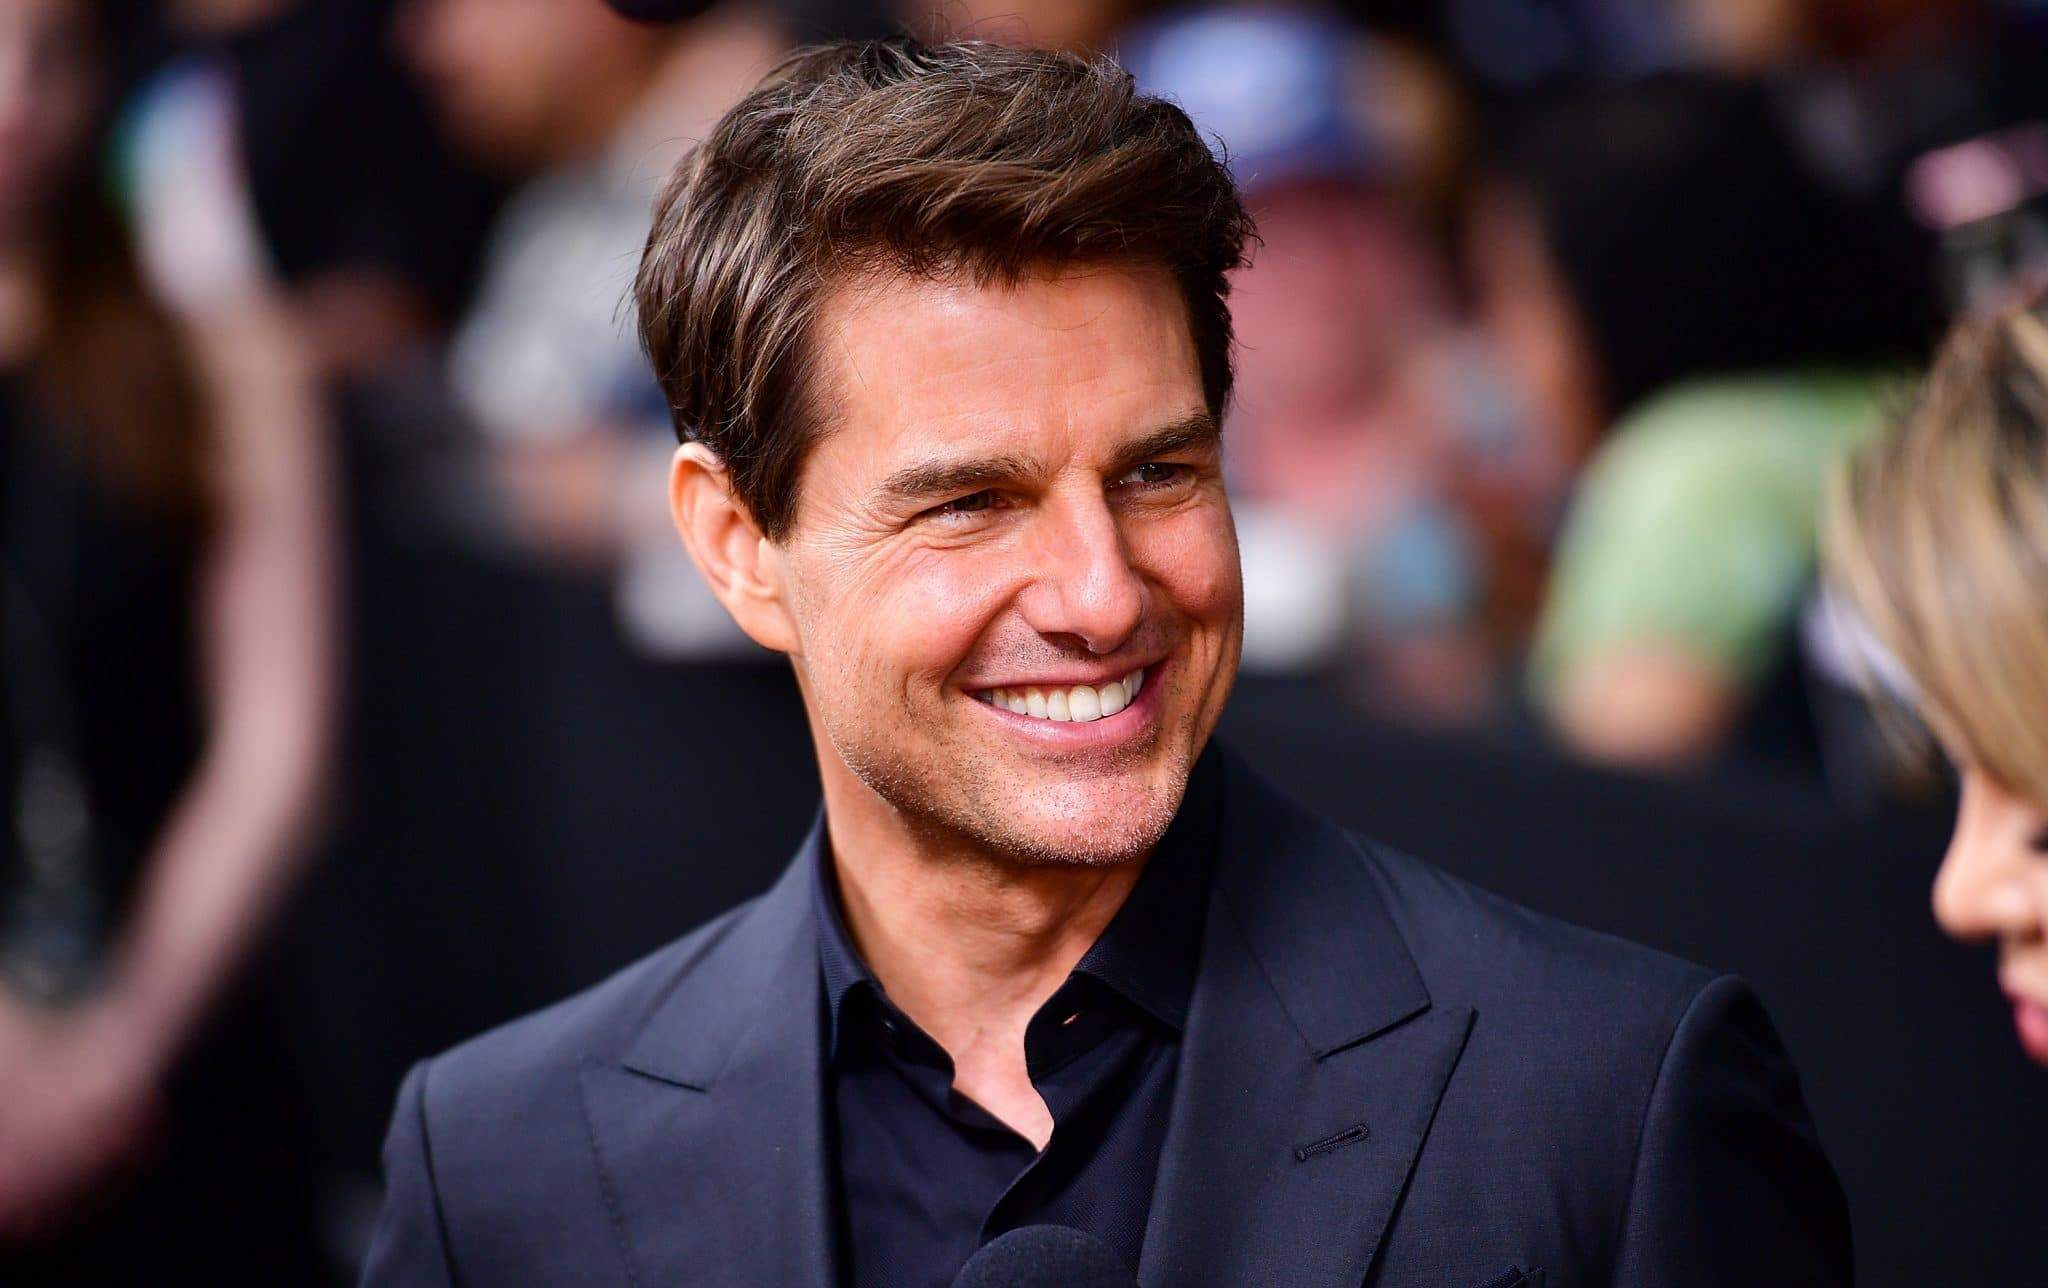 Tom Cruise Learning Disability